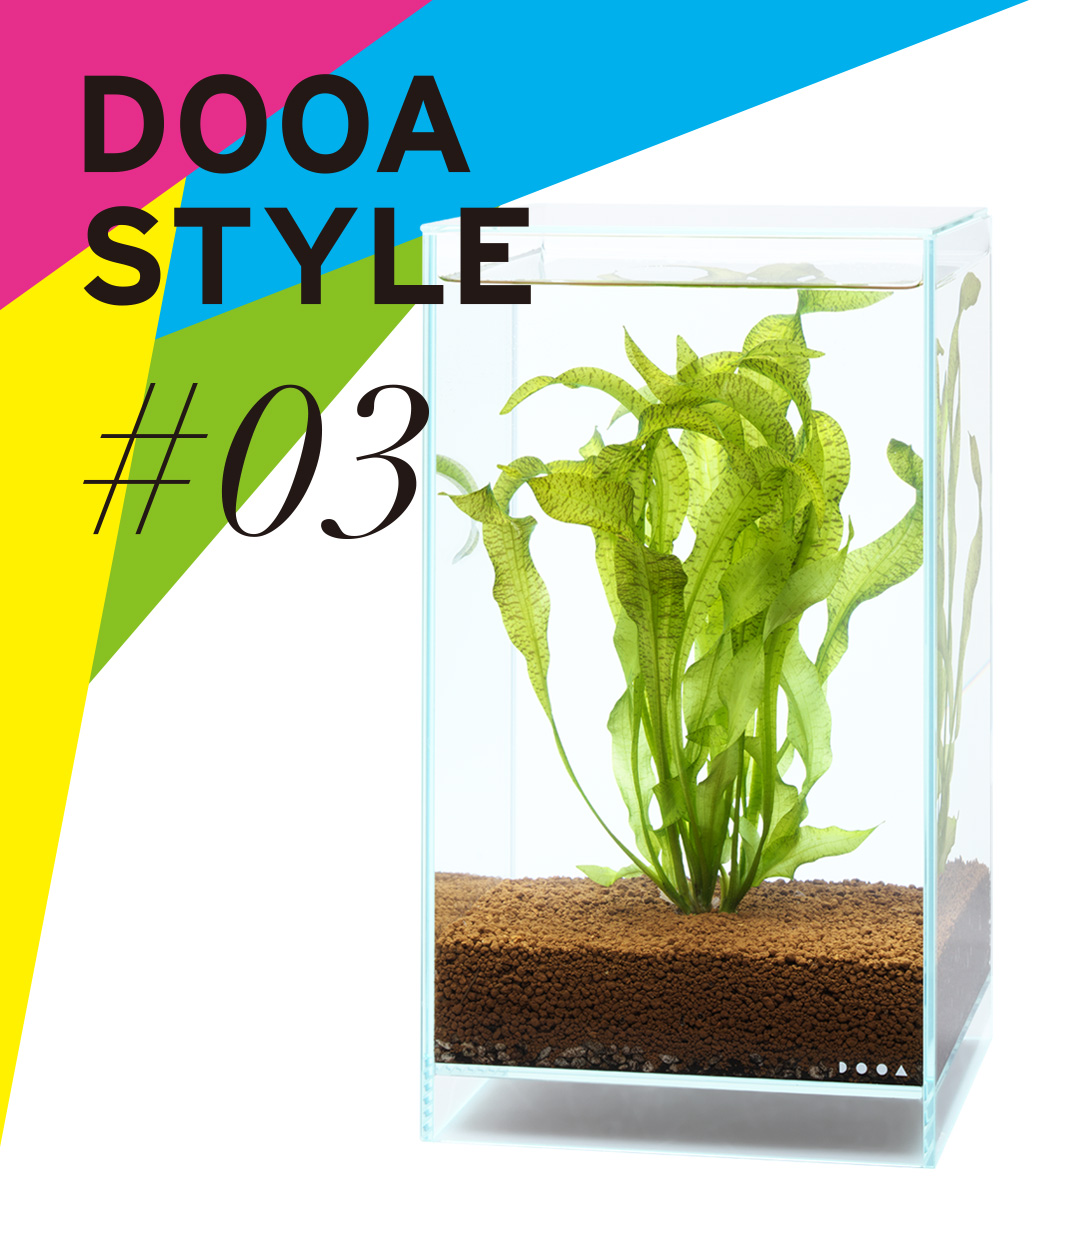 DOOA STYLE #3 'An aquatic appearance'